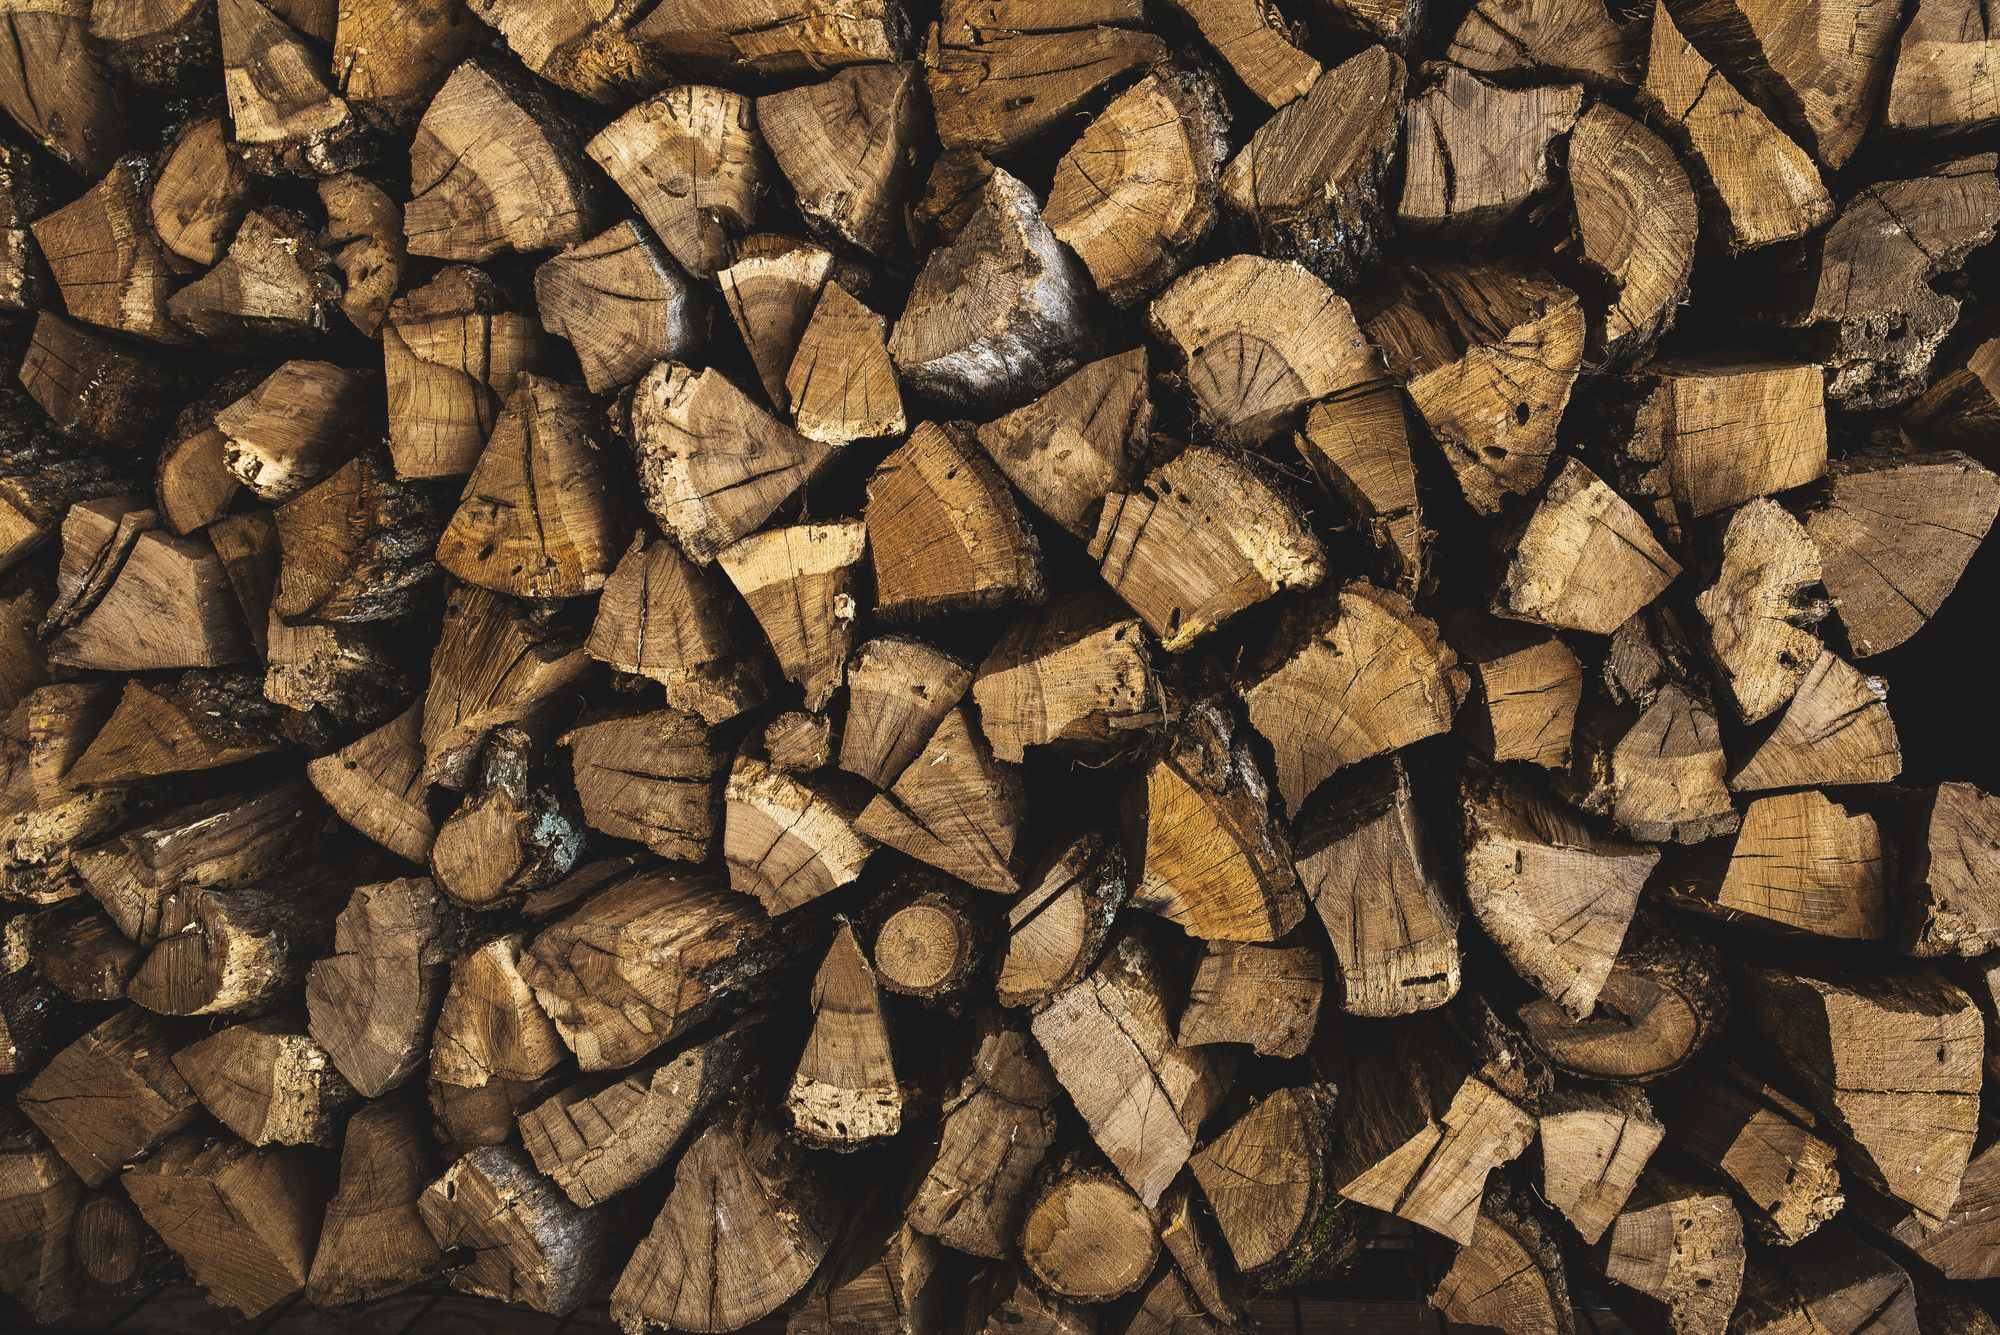 What kind of wood do you use?